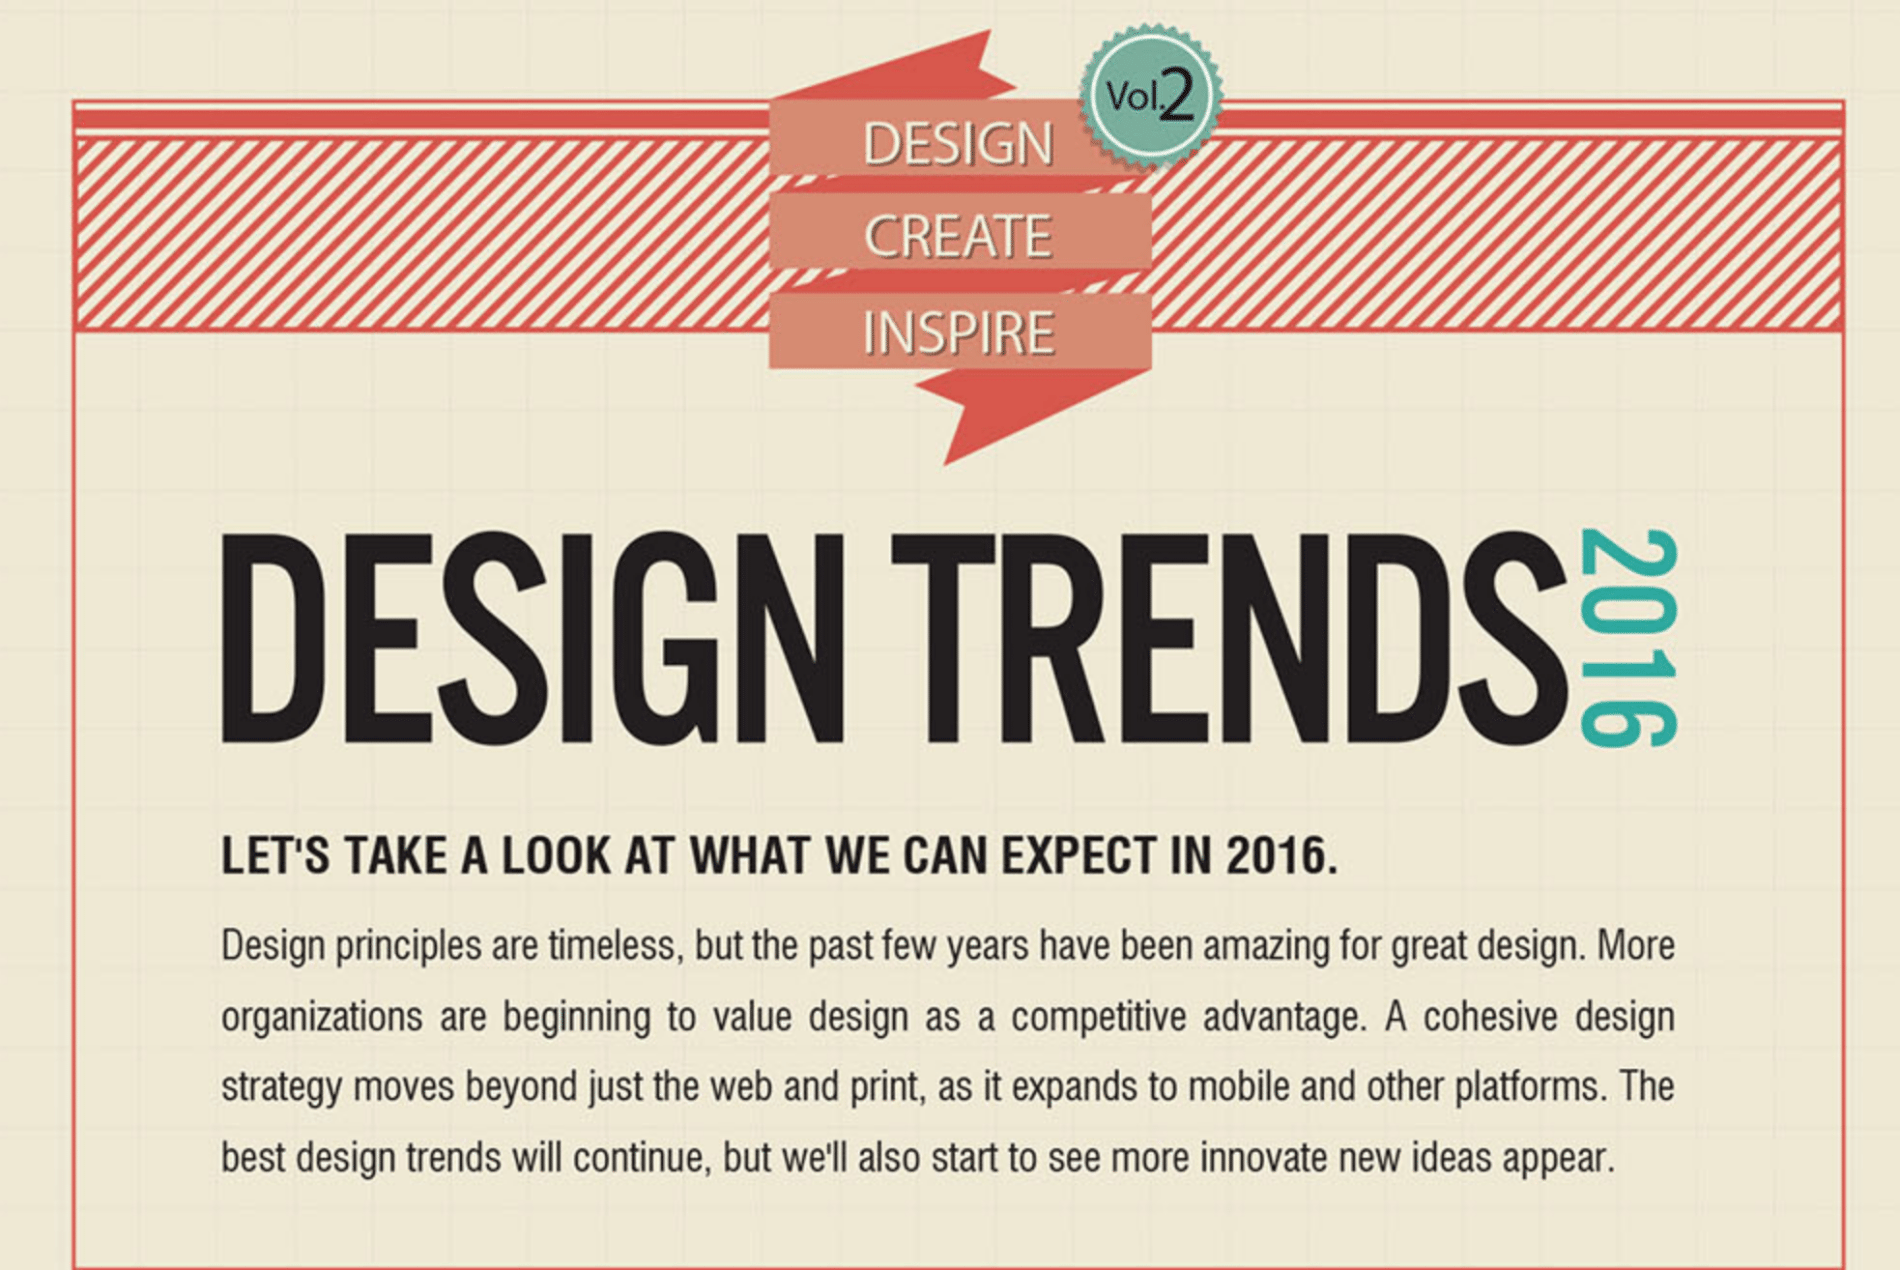 design-trends-2016-header